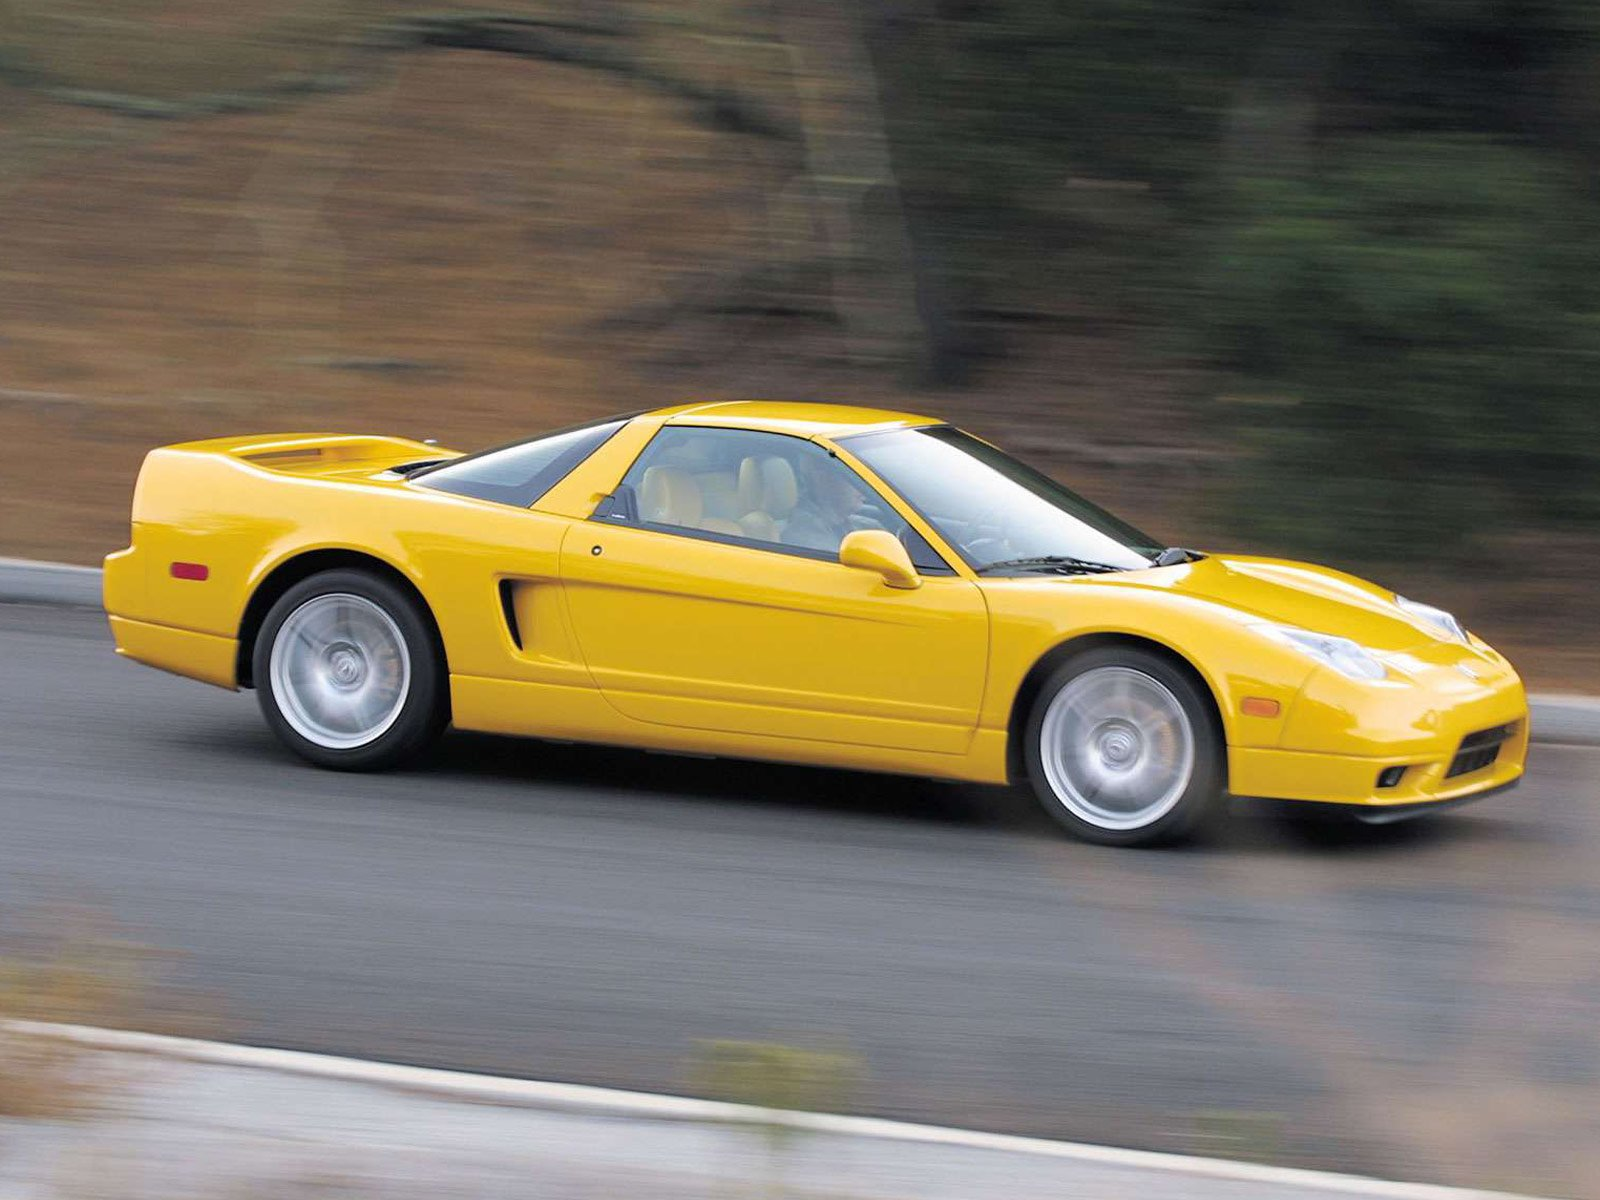 Latest Japanese Car Photos 2005 Acura Nsx Free Download